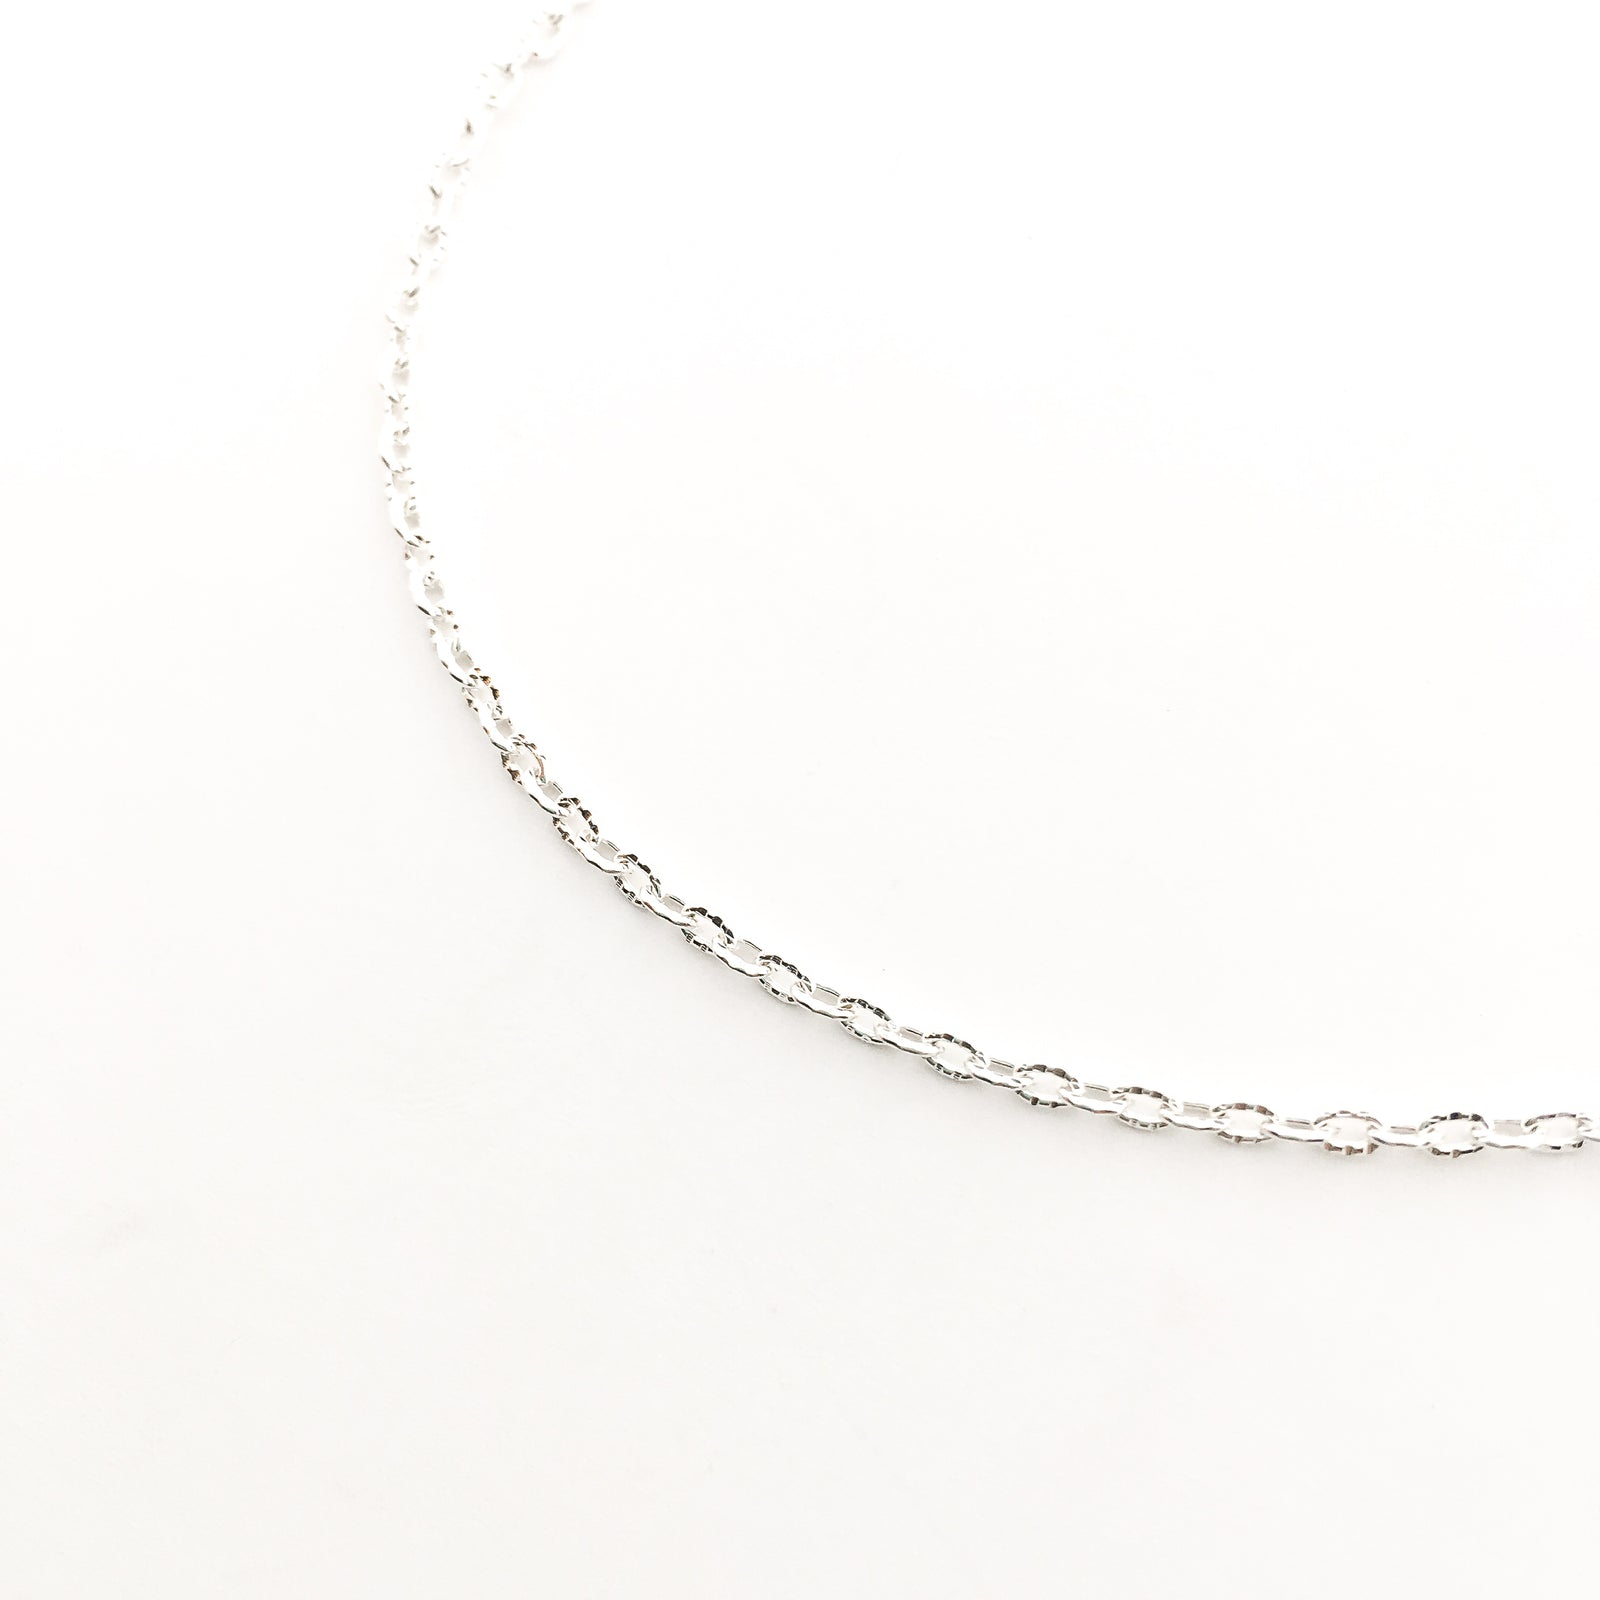 "TEXTURED BRIGHT SILVER 30"" NECKLACE"